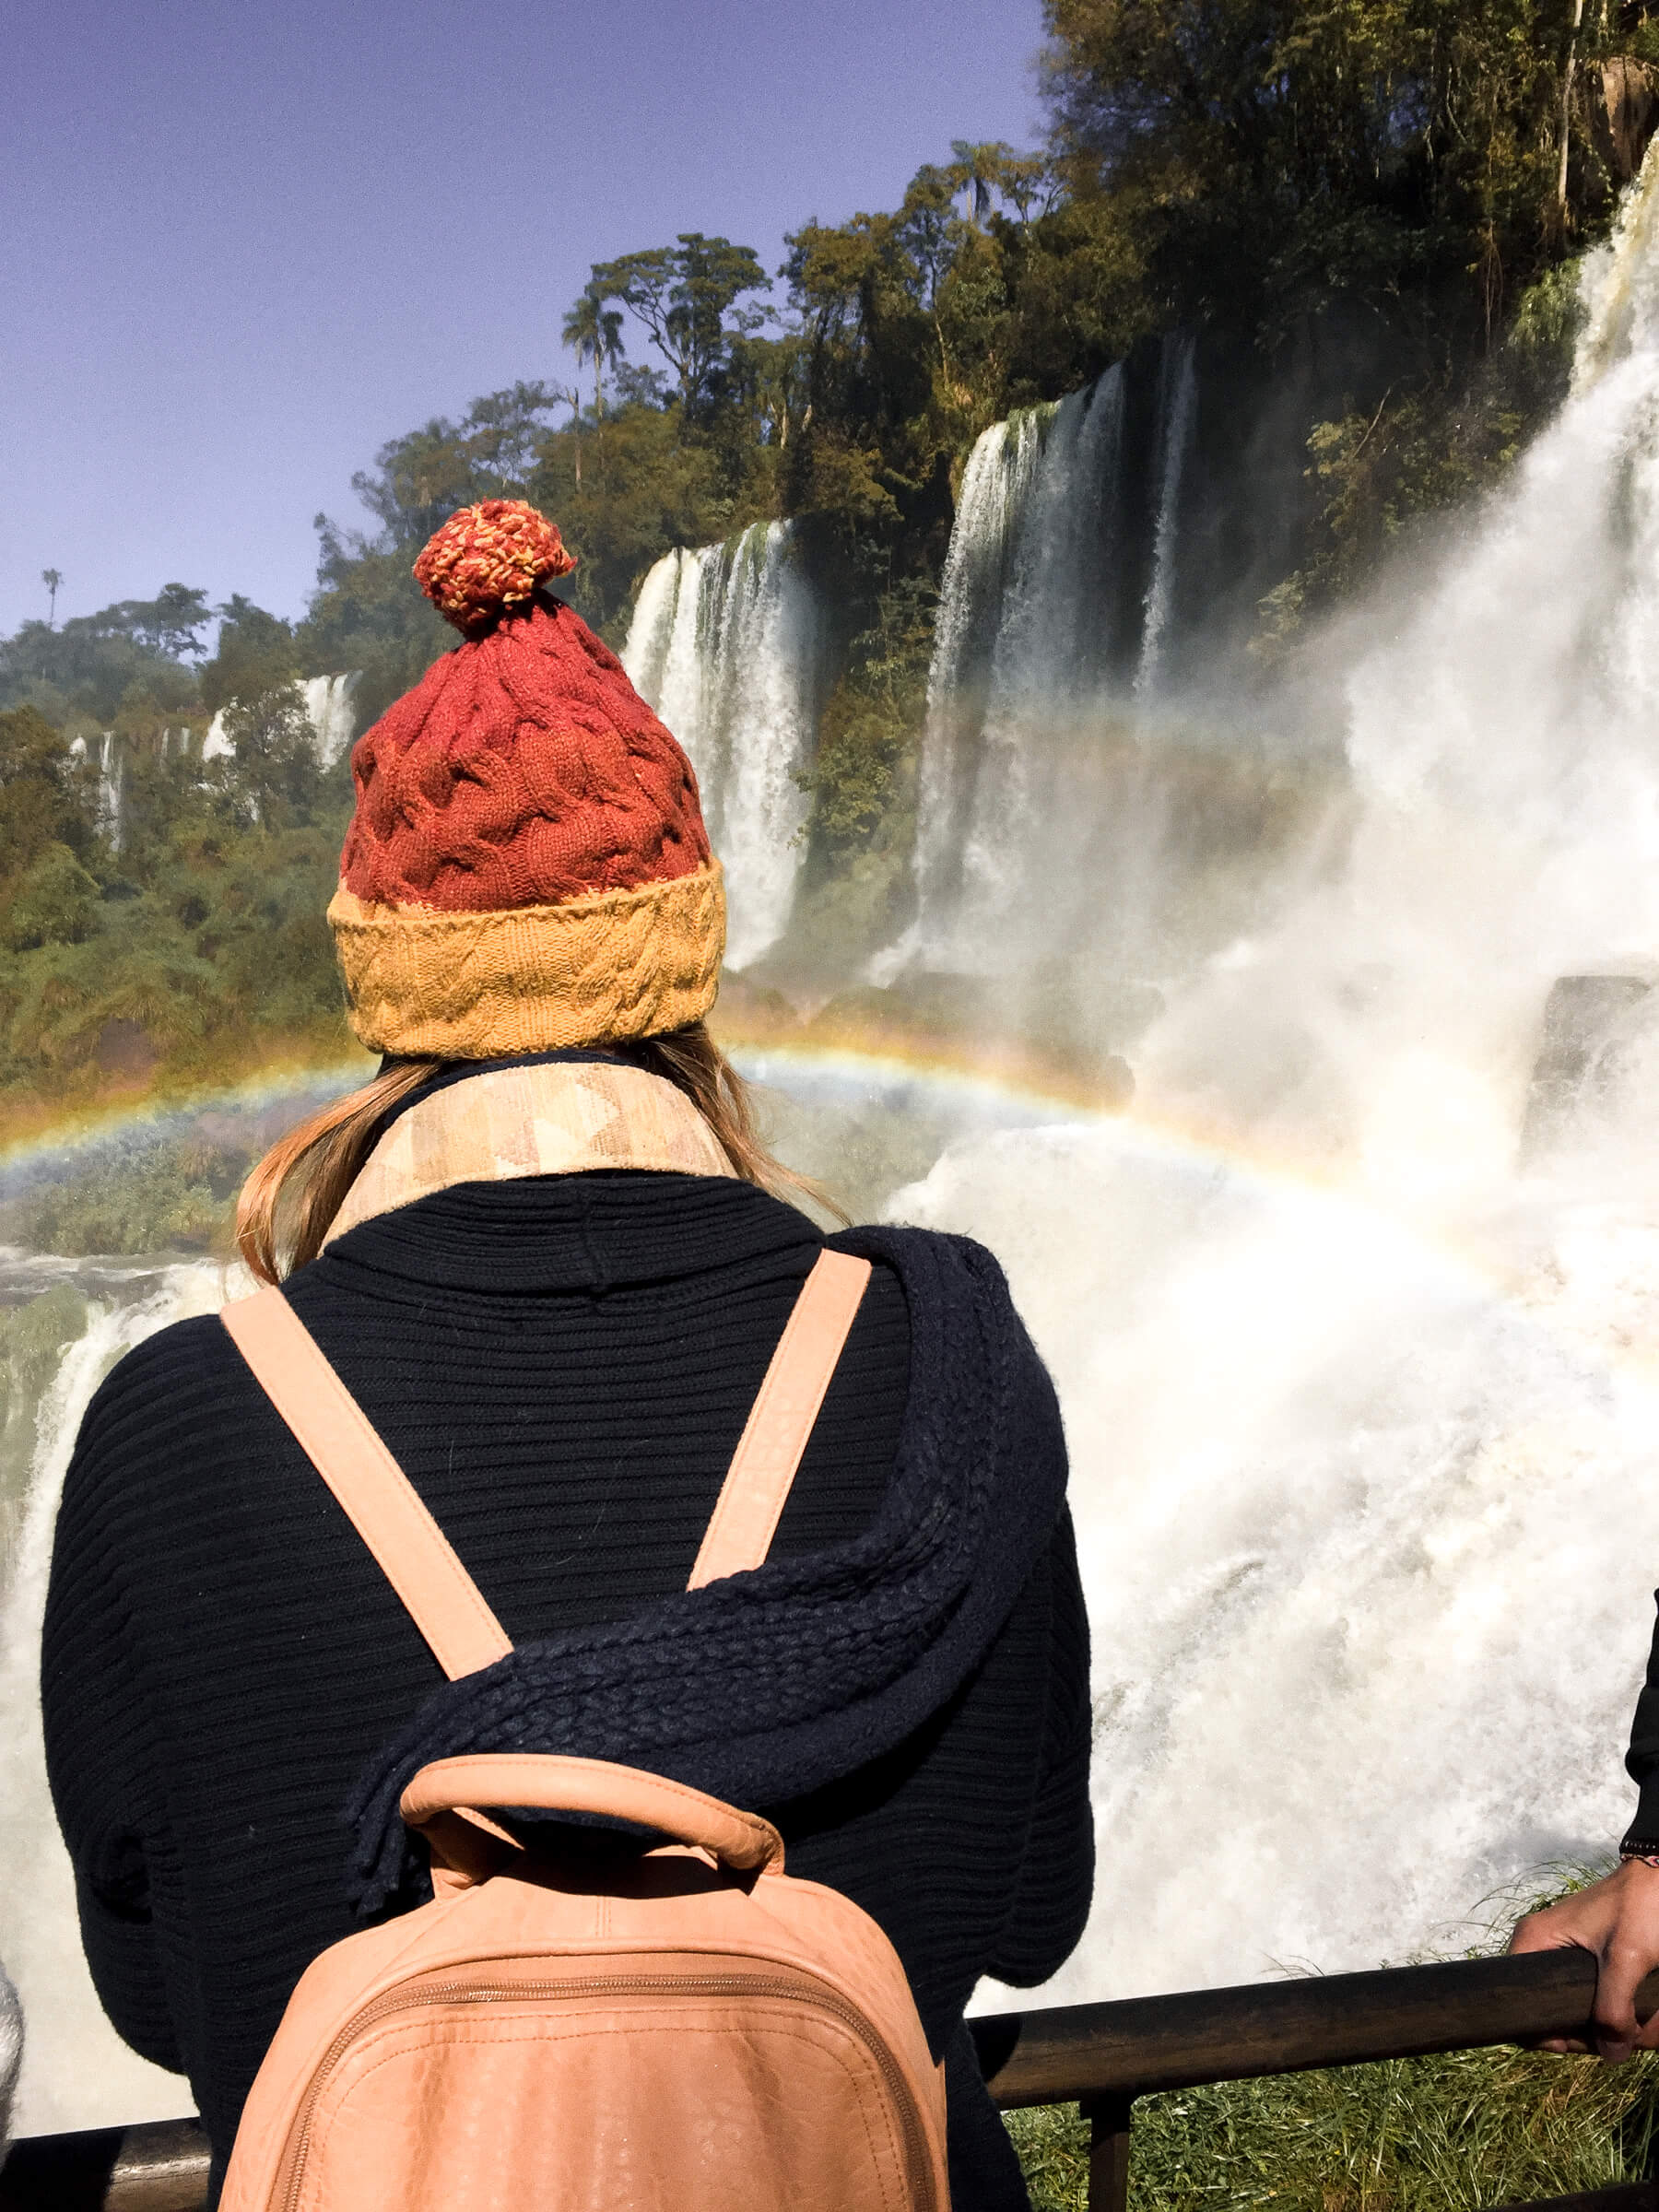 A girl wearing a red beany over looking a huge waterfall with a rainbow arching in front